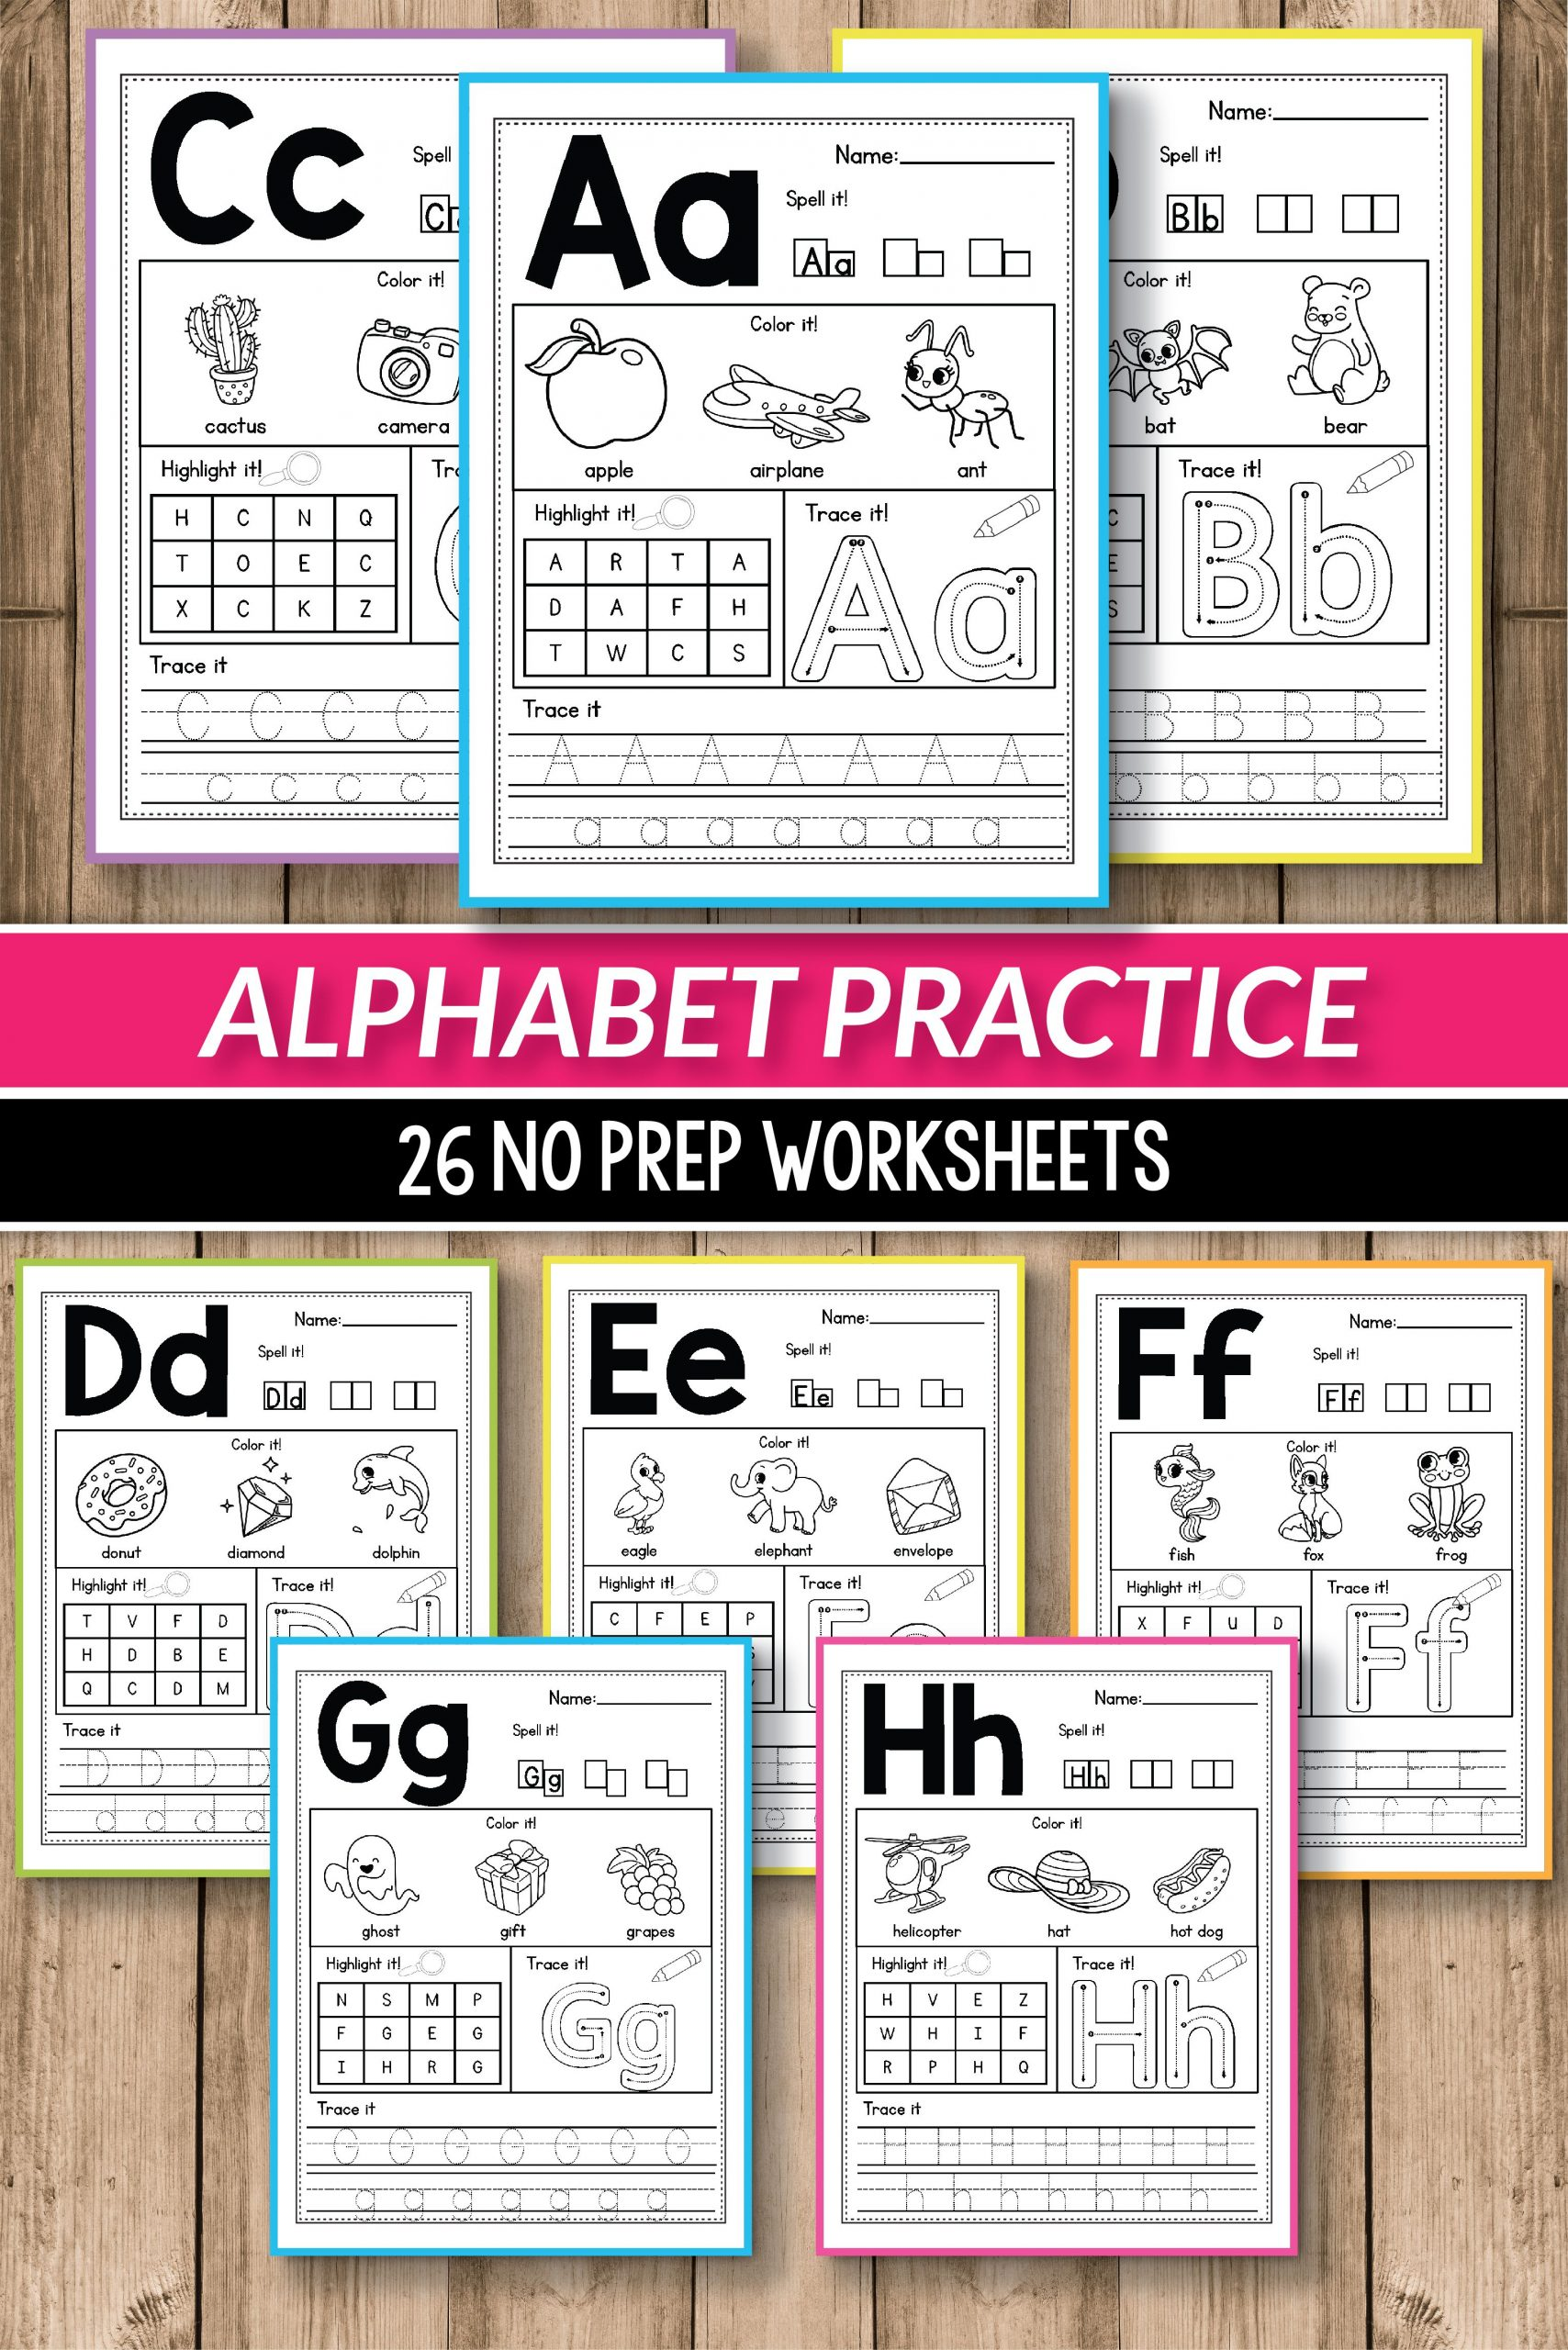 Alphabet printable activities for preschool and kindergarten These pack of worksheets will make teaching and practice English uppercase and lowercase letters much easier Your students will have so much fun coloring cute animals and alphabet pictures tracing letters practicing writing and more The kids practice letter recognition and handwriting in a creative way This pages are perfect fo morning work small groups early finishers alinavdesign alphabetpractice alphabetworksheets abcs